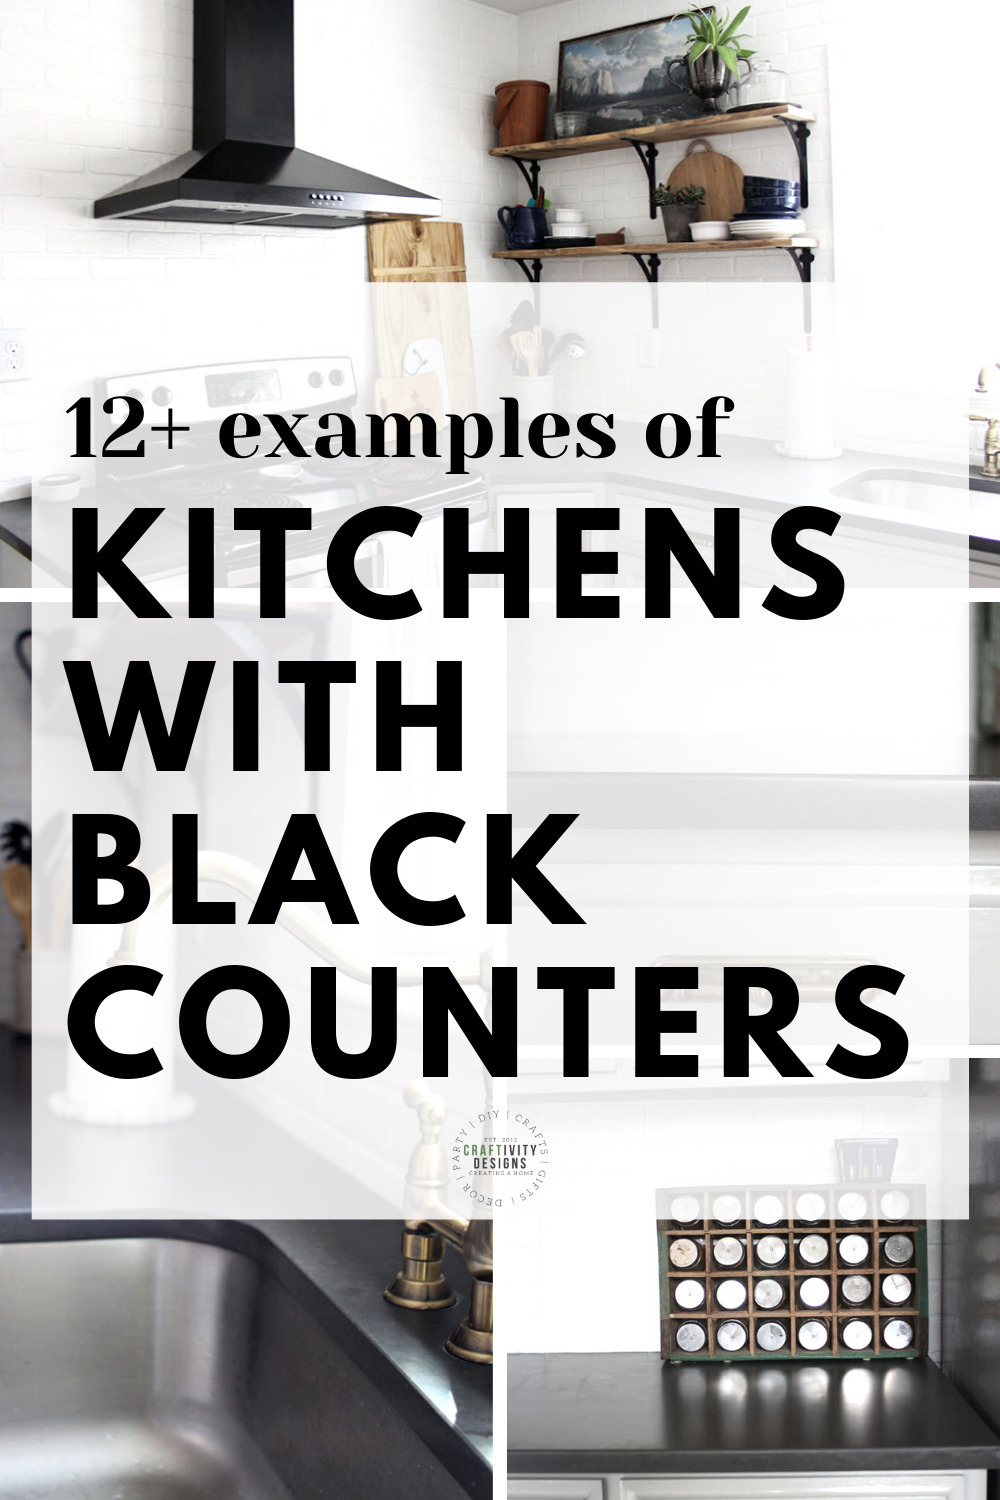 9+ Examples of Black Kitchen Countertops in Beautiful Homes ...